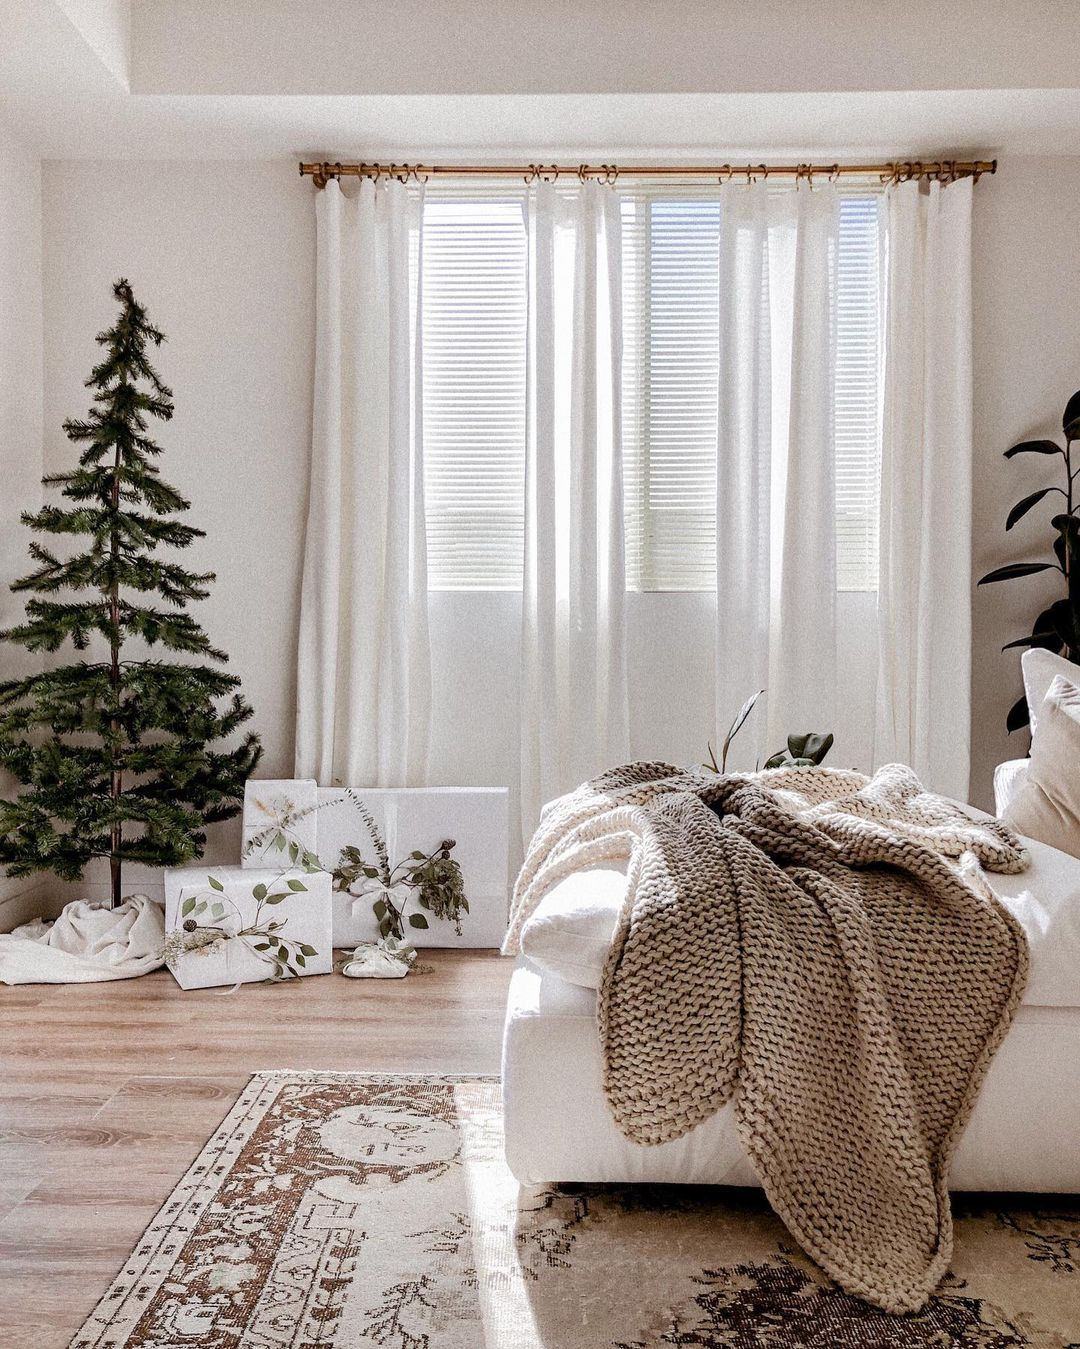 15 Non Traditional Christmas Decor Ideas